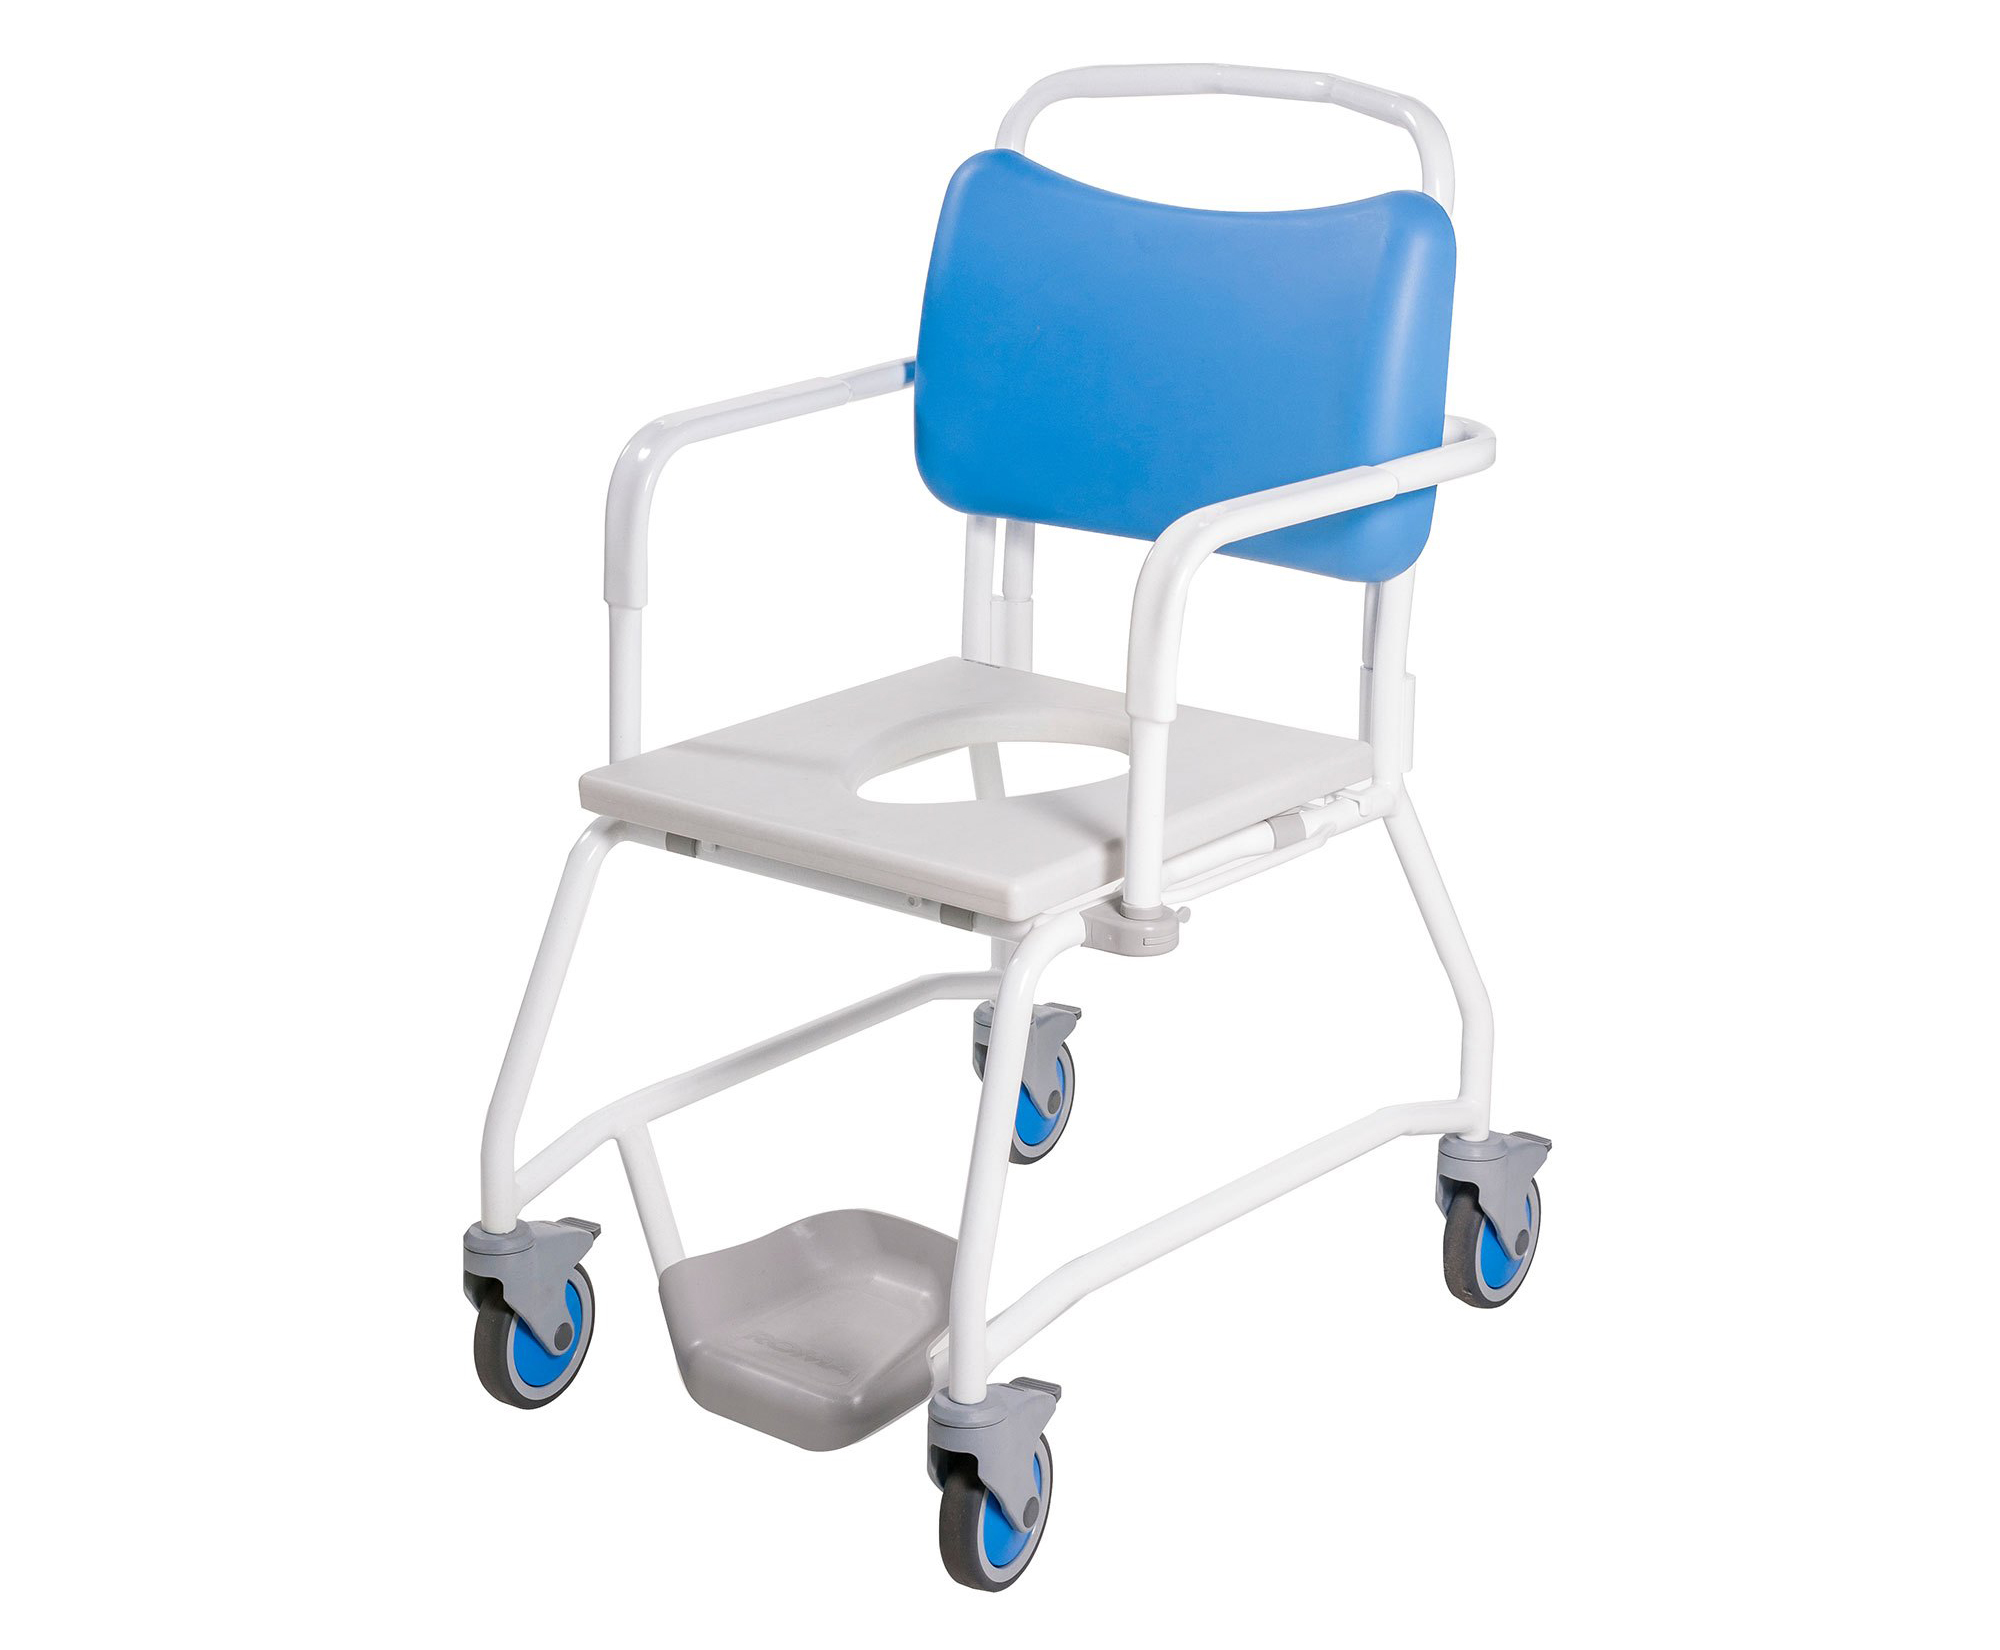 Romachair hospital chair commode shower